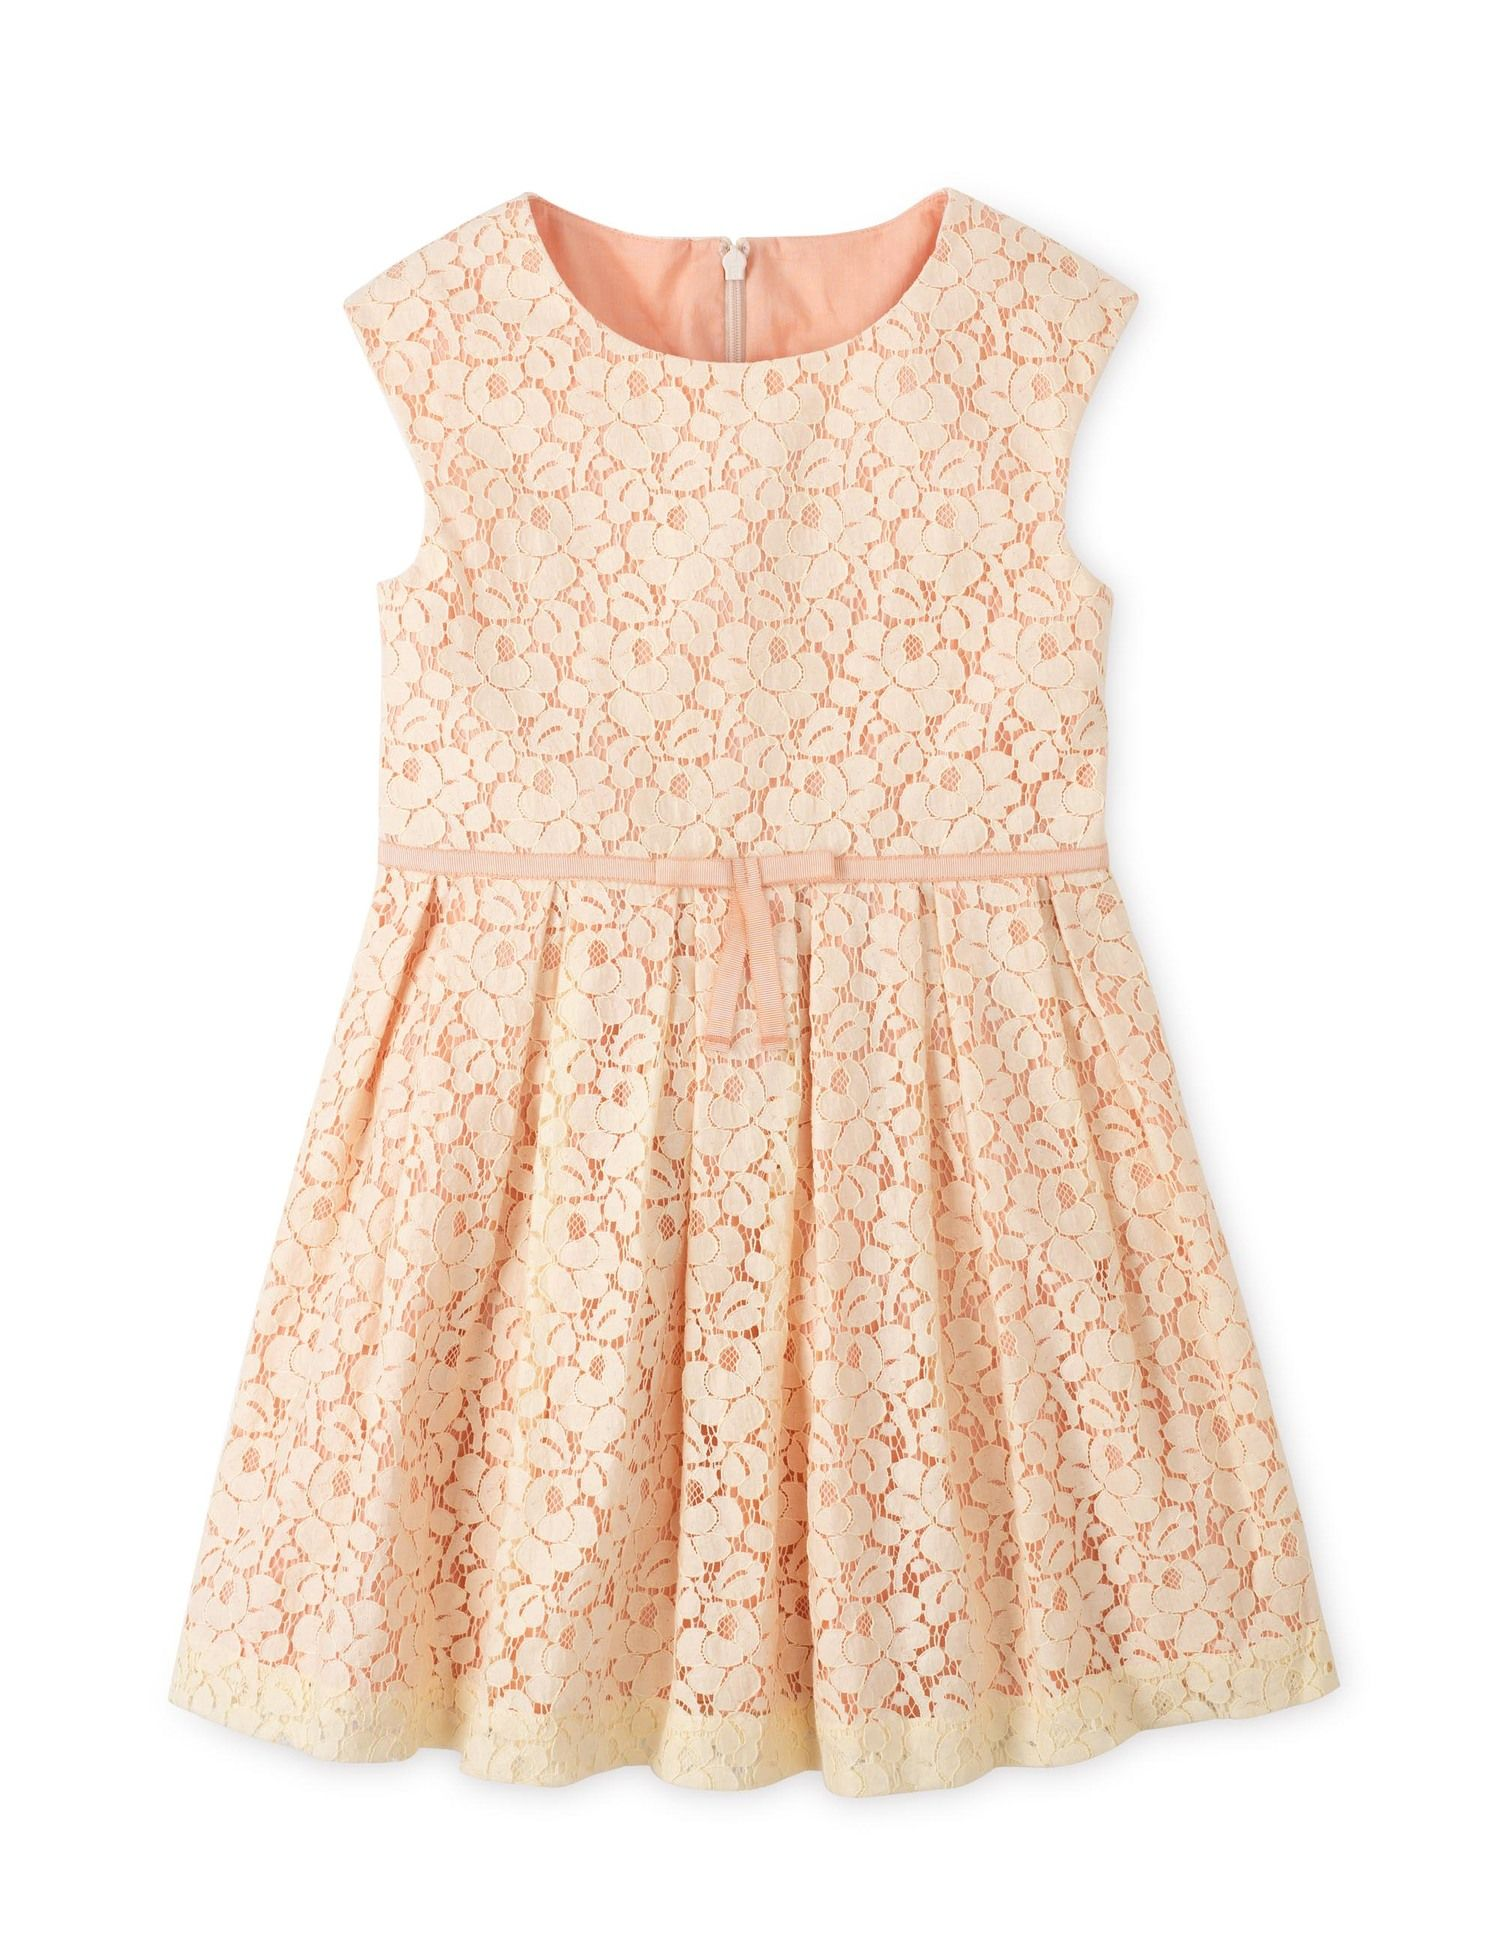 ac6366fcf959 Mini Boden Lace Dress (Now with 20% off) #SS15 | Kids These Days ...